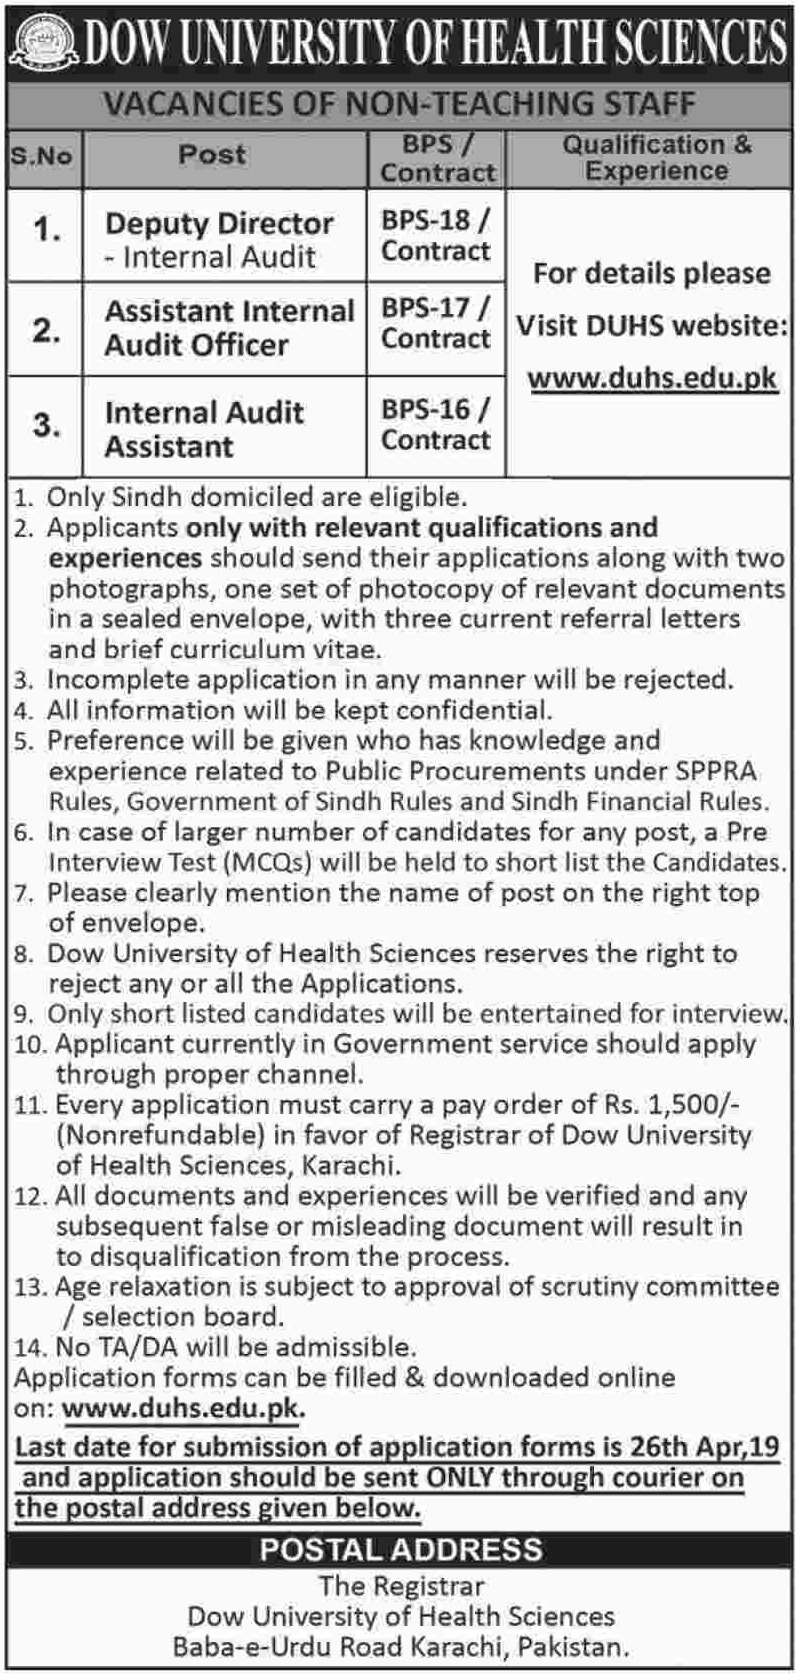 DOW University of Health Sciences DUHS Karachi Jobs 2019 Sindh Latest